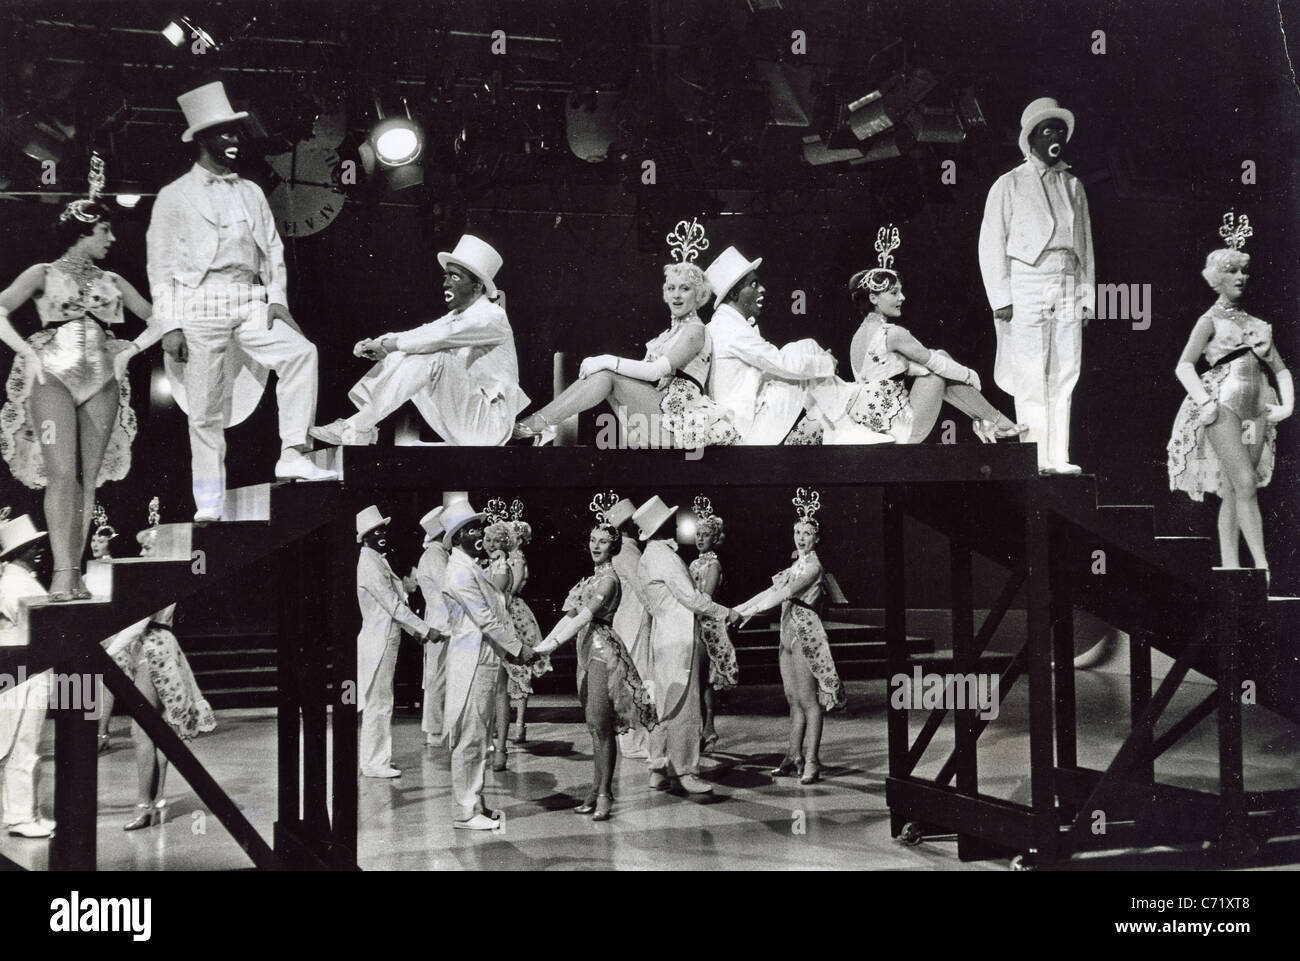 George mitchells black and white minstrels bbc tv variety show about 1960 stock image